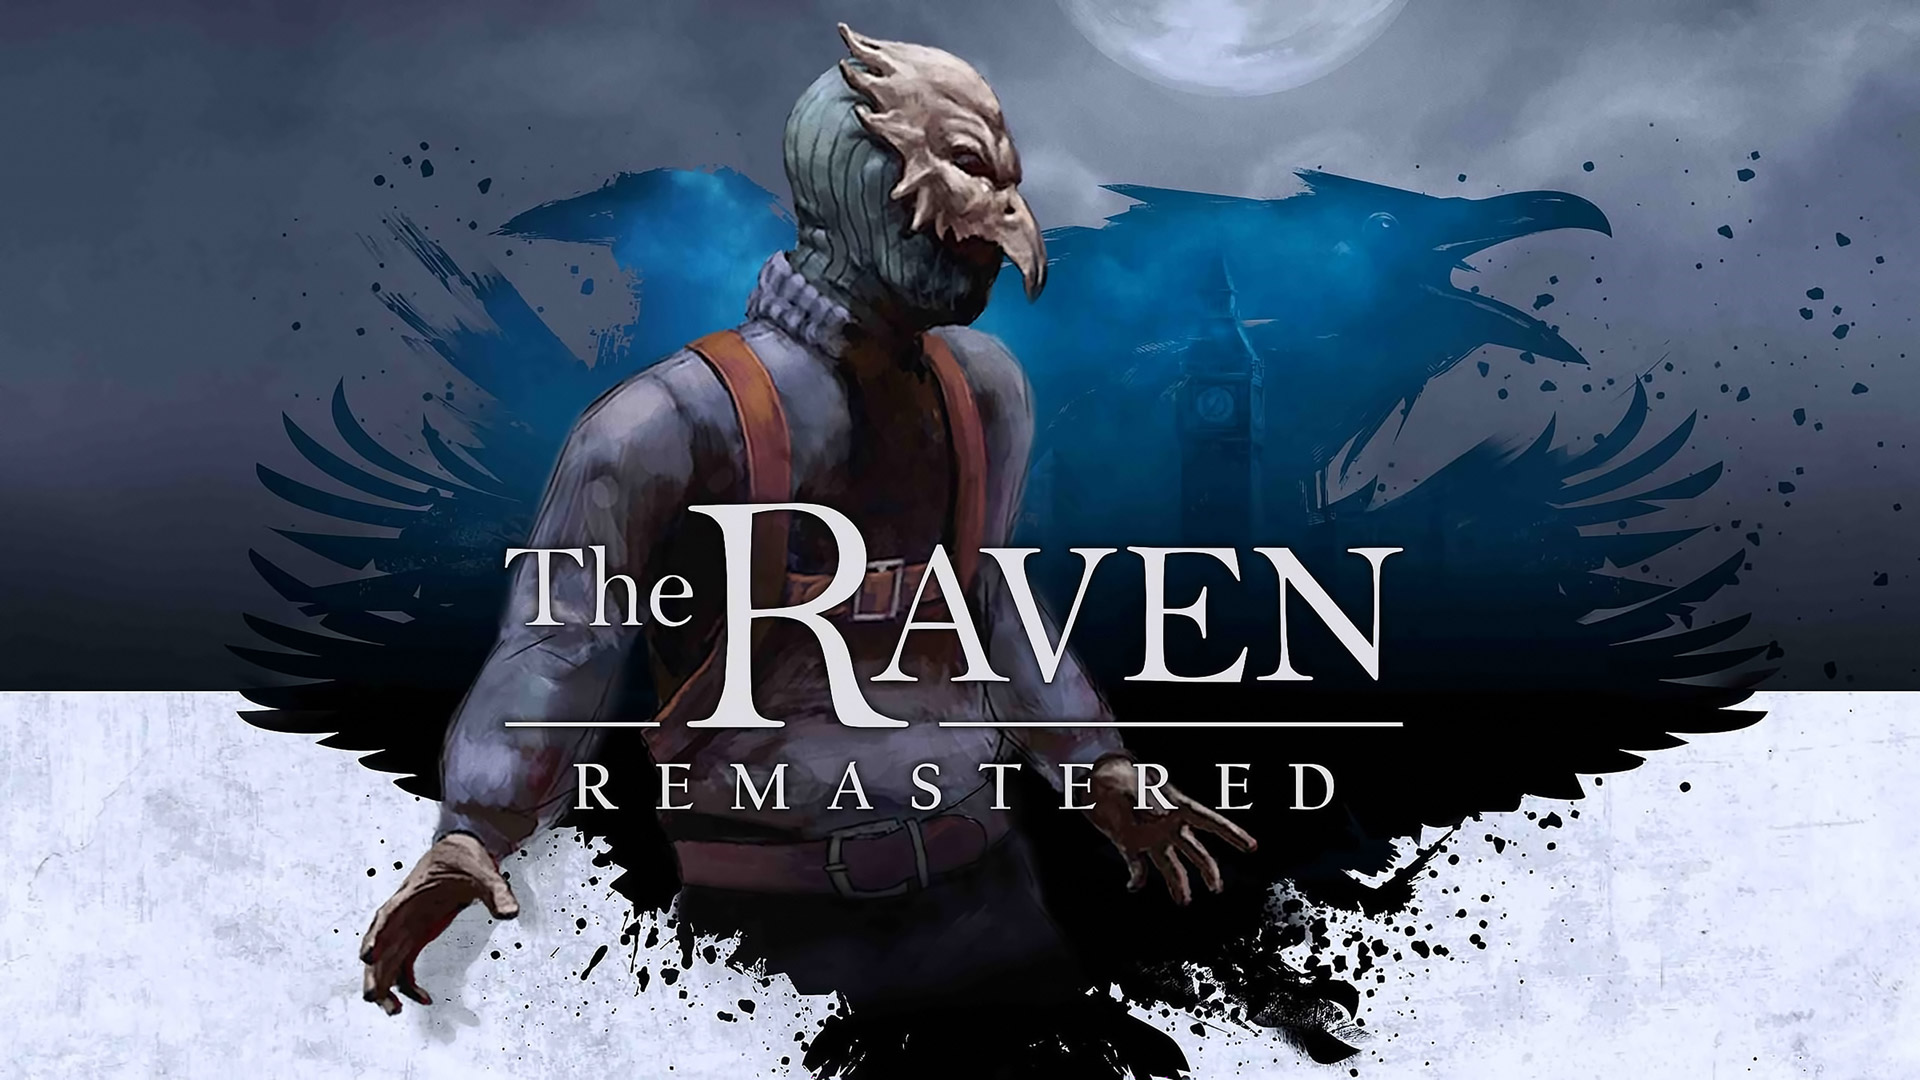 Free The Raven Wallpaper in 1920x1080